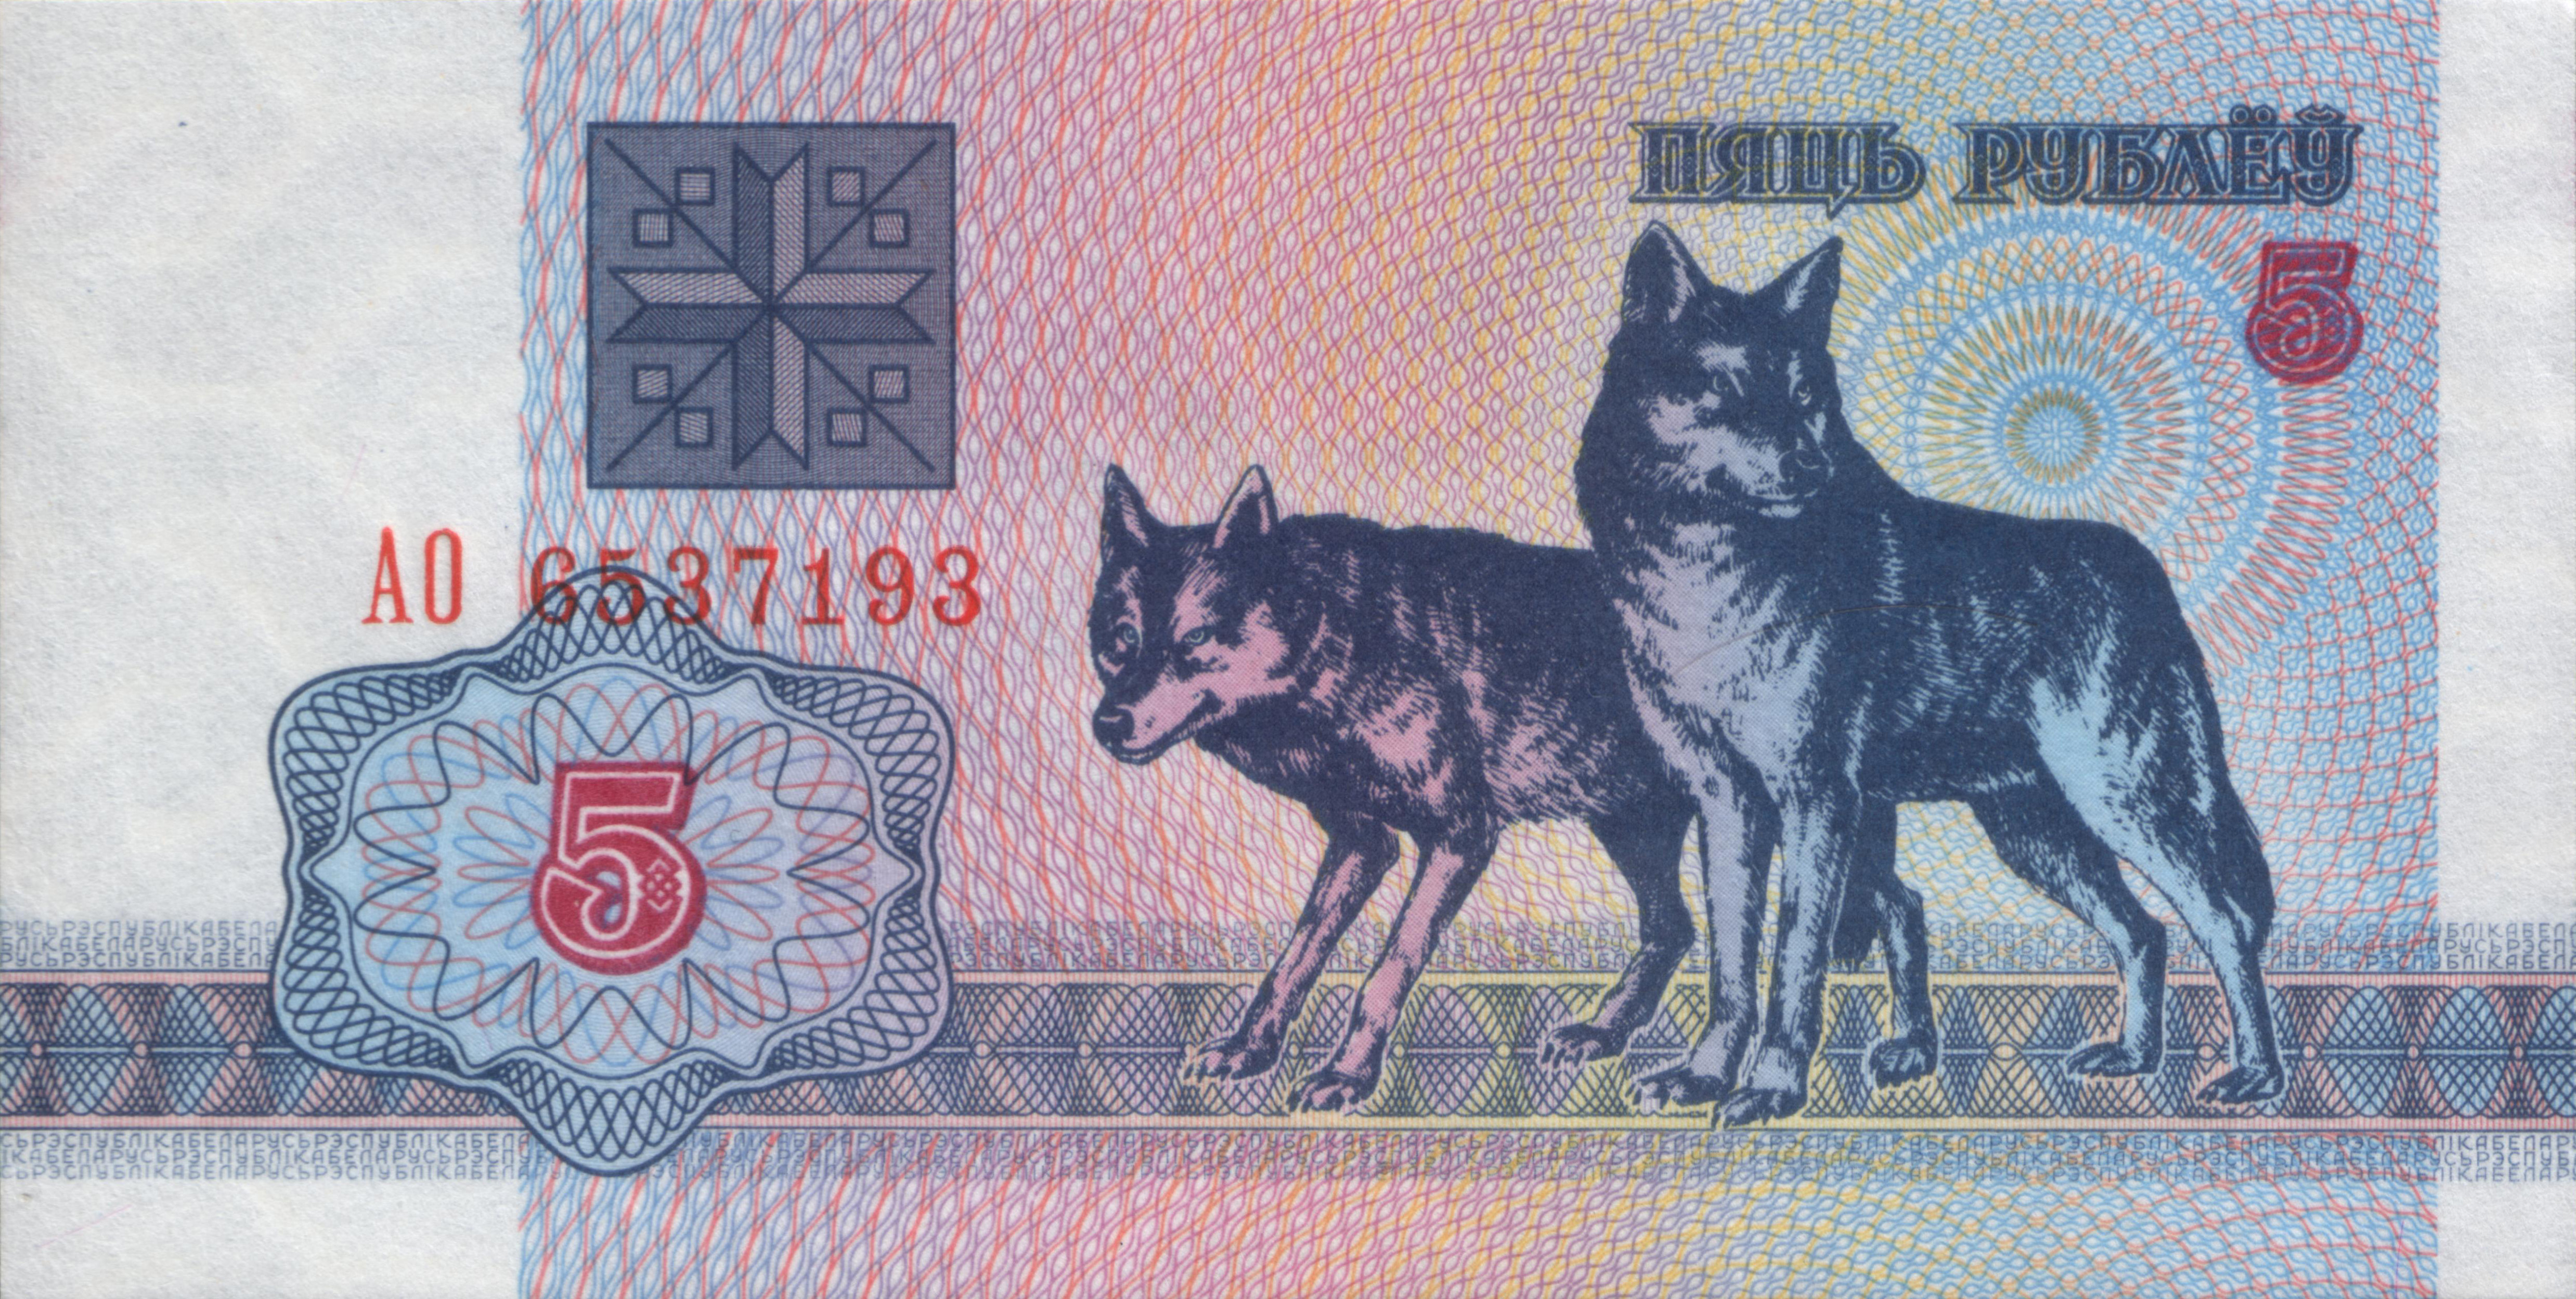 Belarusian rubles: how bunnies became millions